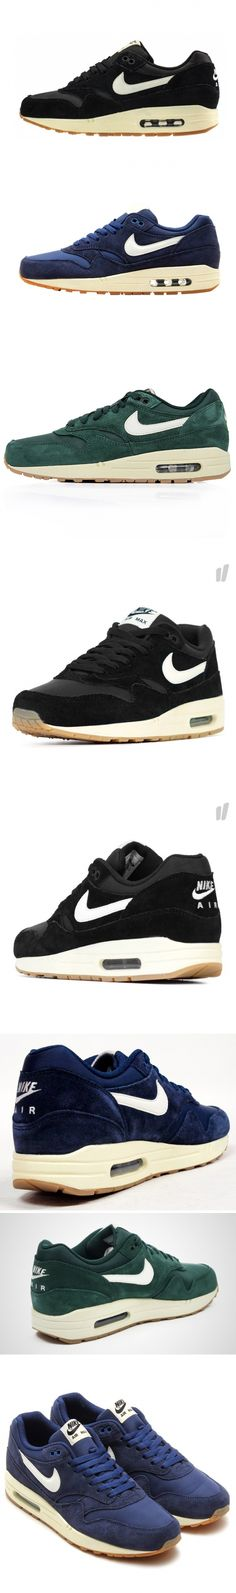 AIR MAX 1 ESSENTIAL SUEDE PACK - DCT Air Max 1, Cleats, Essentials, Pairs, Nike, How To Wear, Clothes, Shoes, Fashion